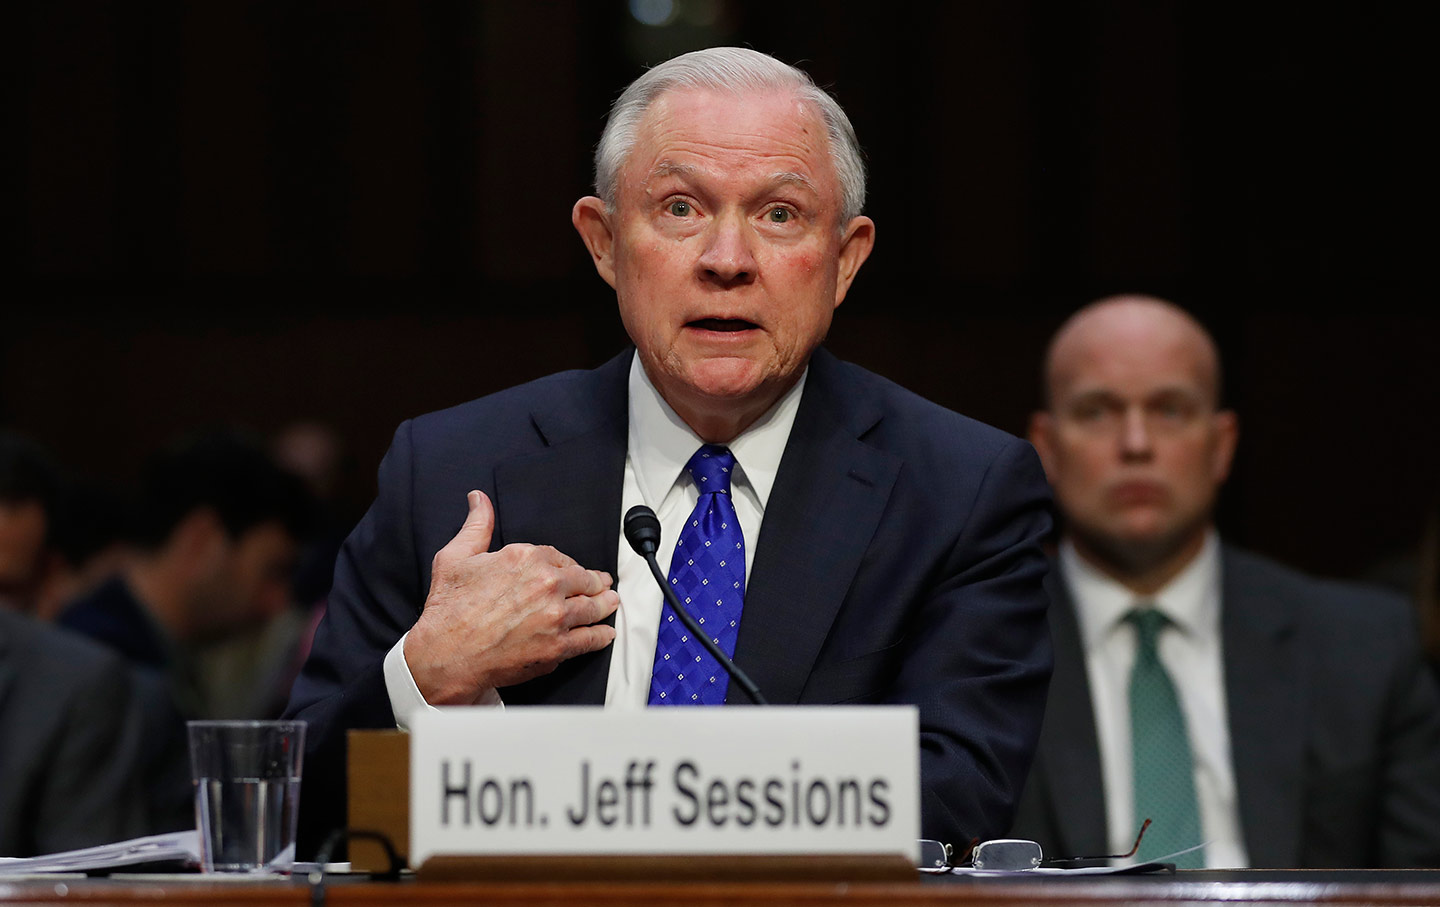 Jeff Sessions Senate Committee